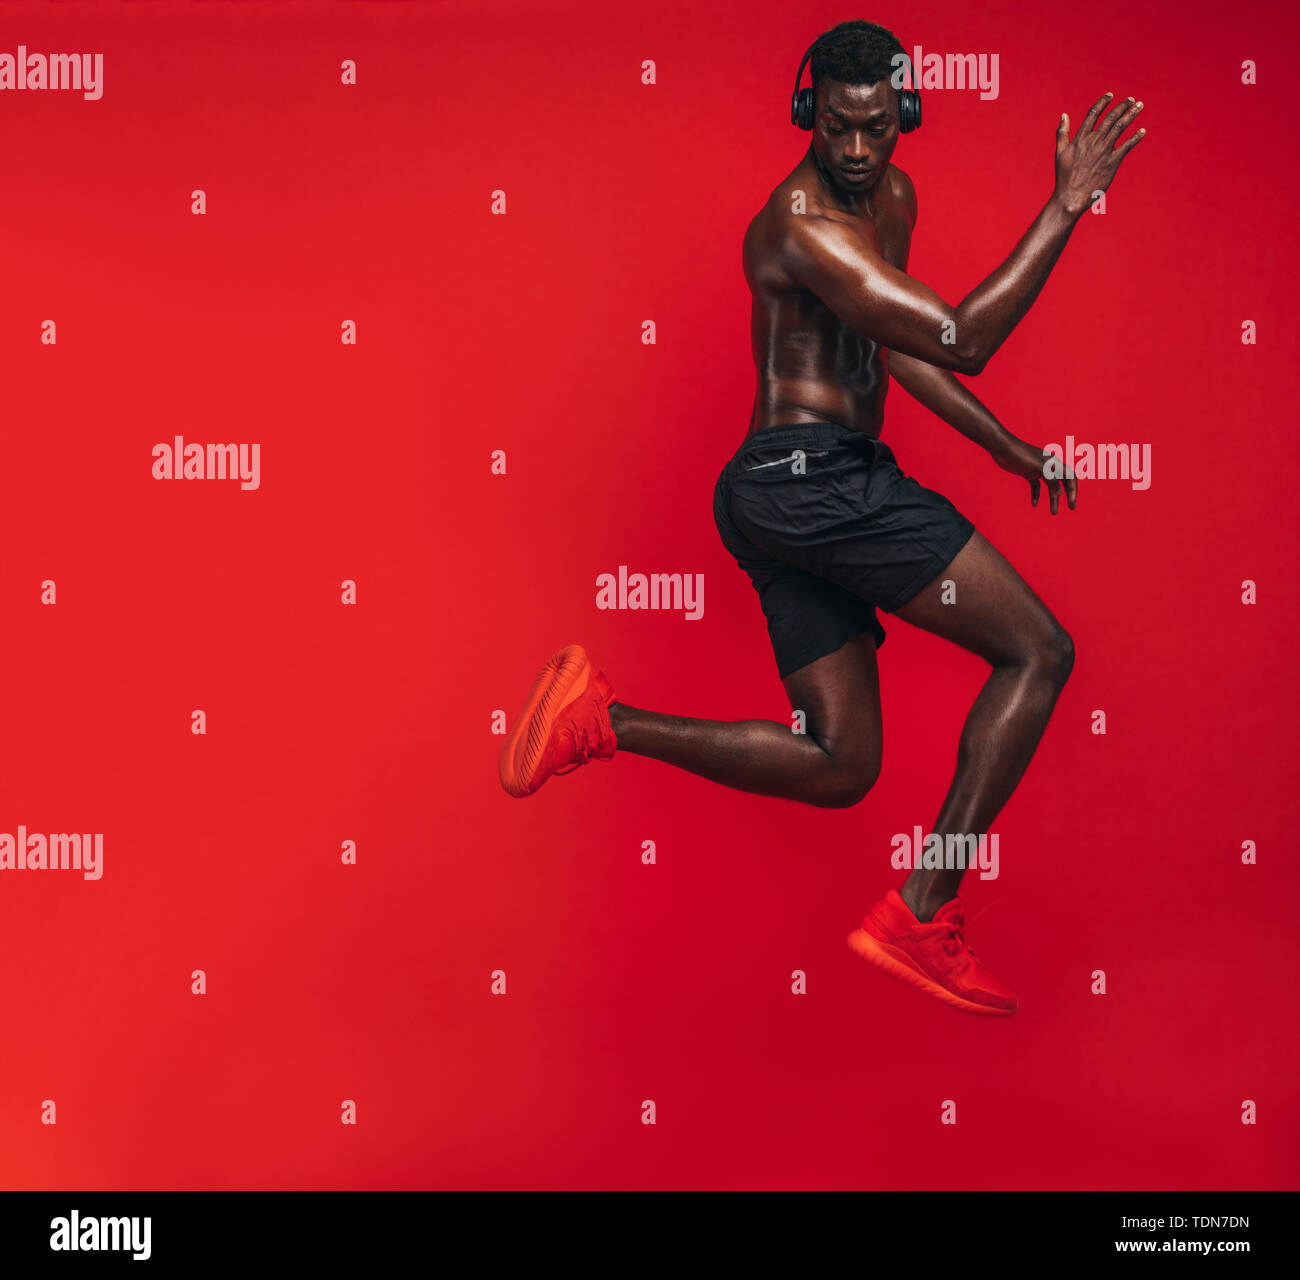 African american man with muscular body exercising on red background. Shot of a fit young man doing workout in studio. - Stock Image